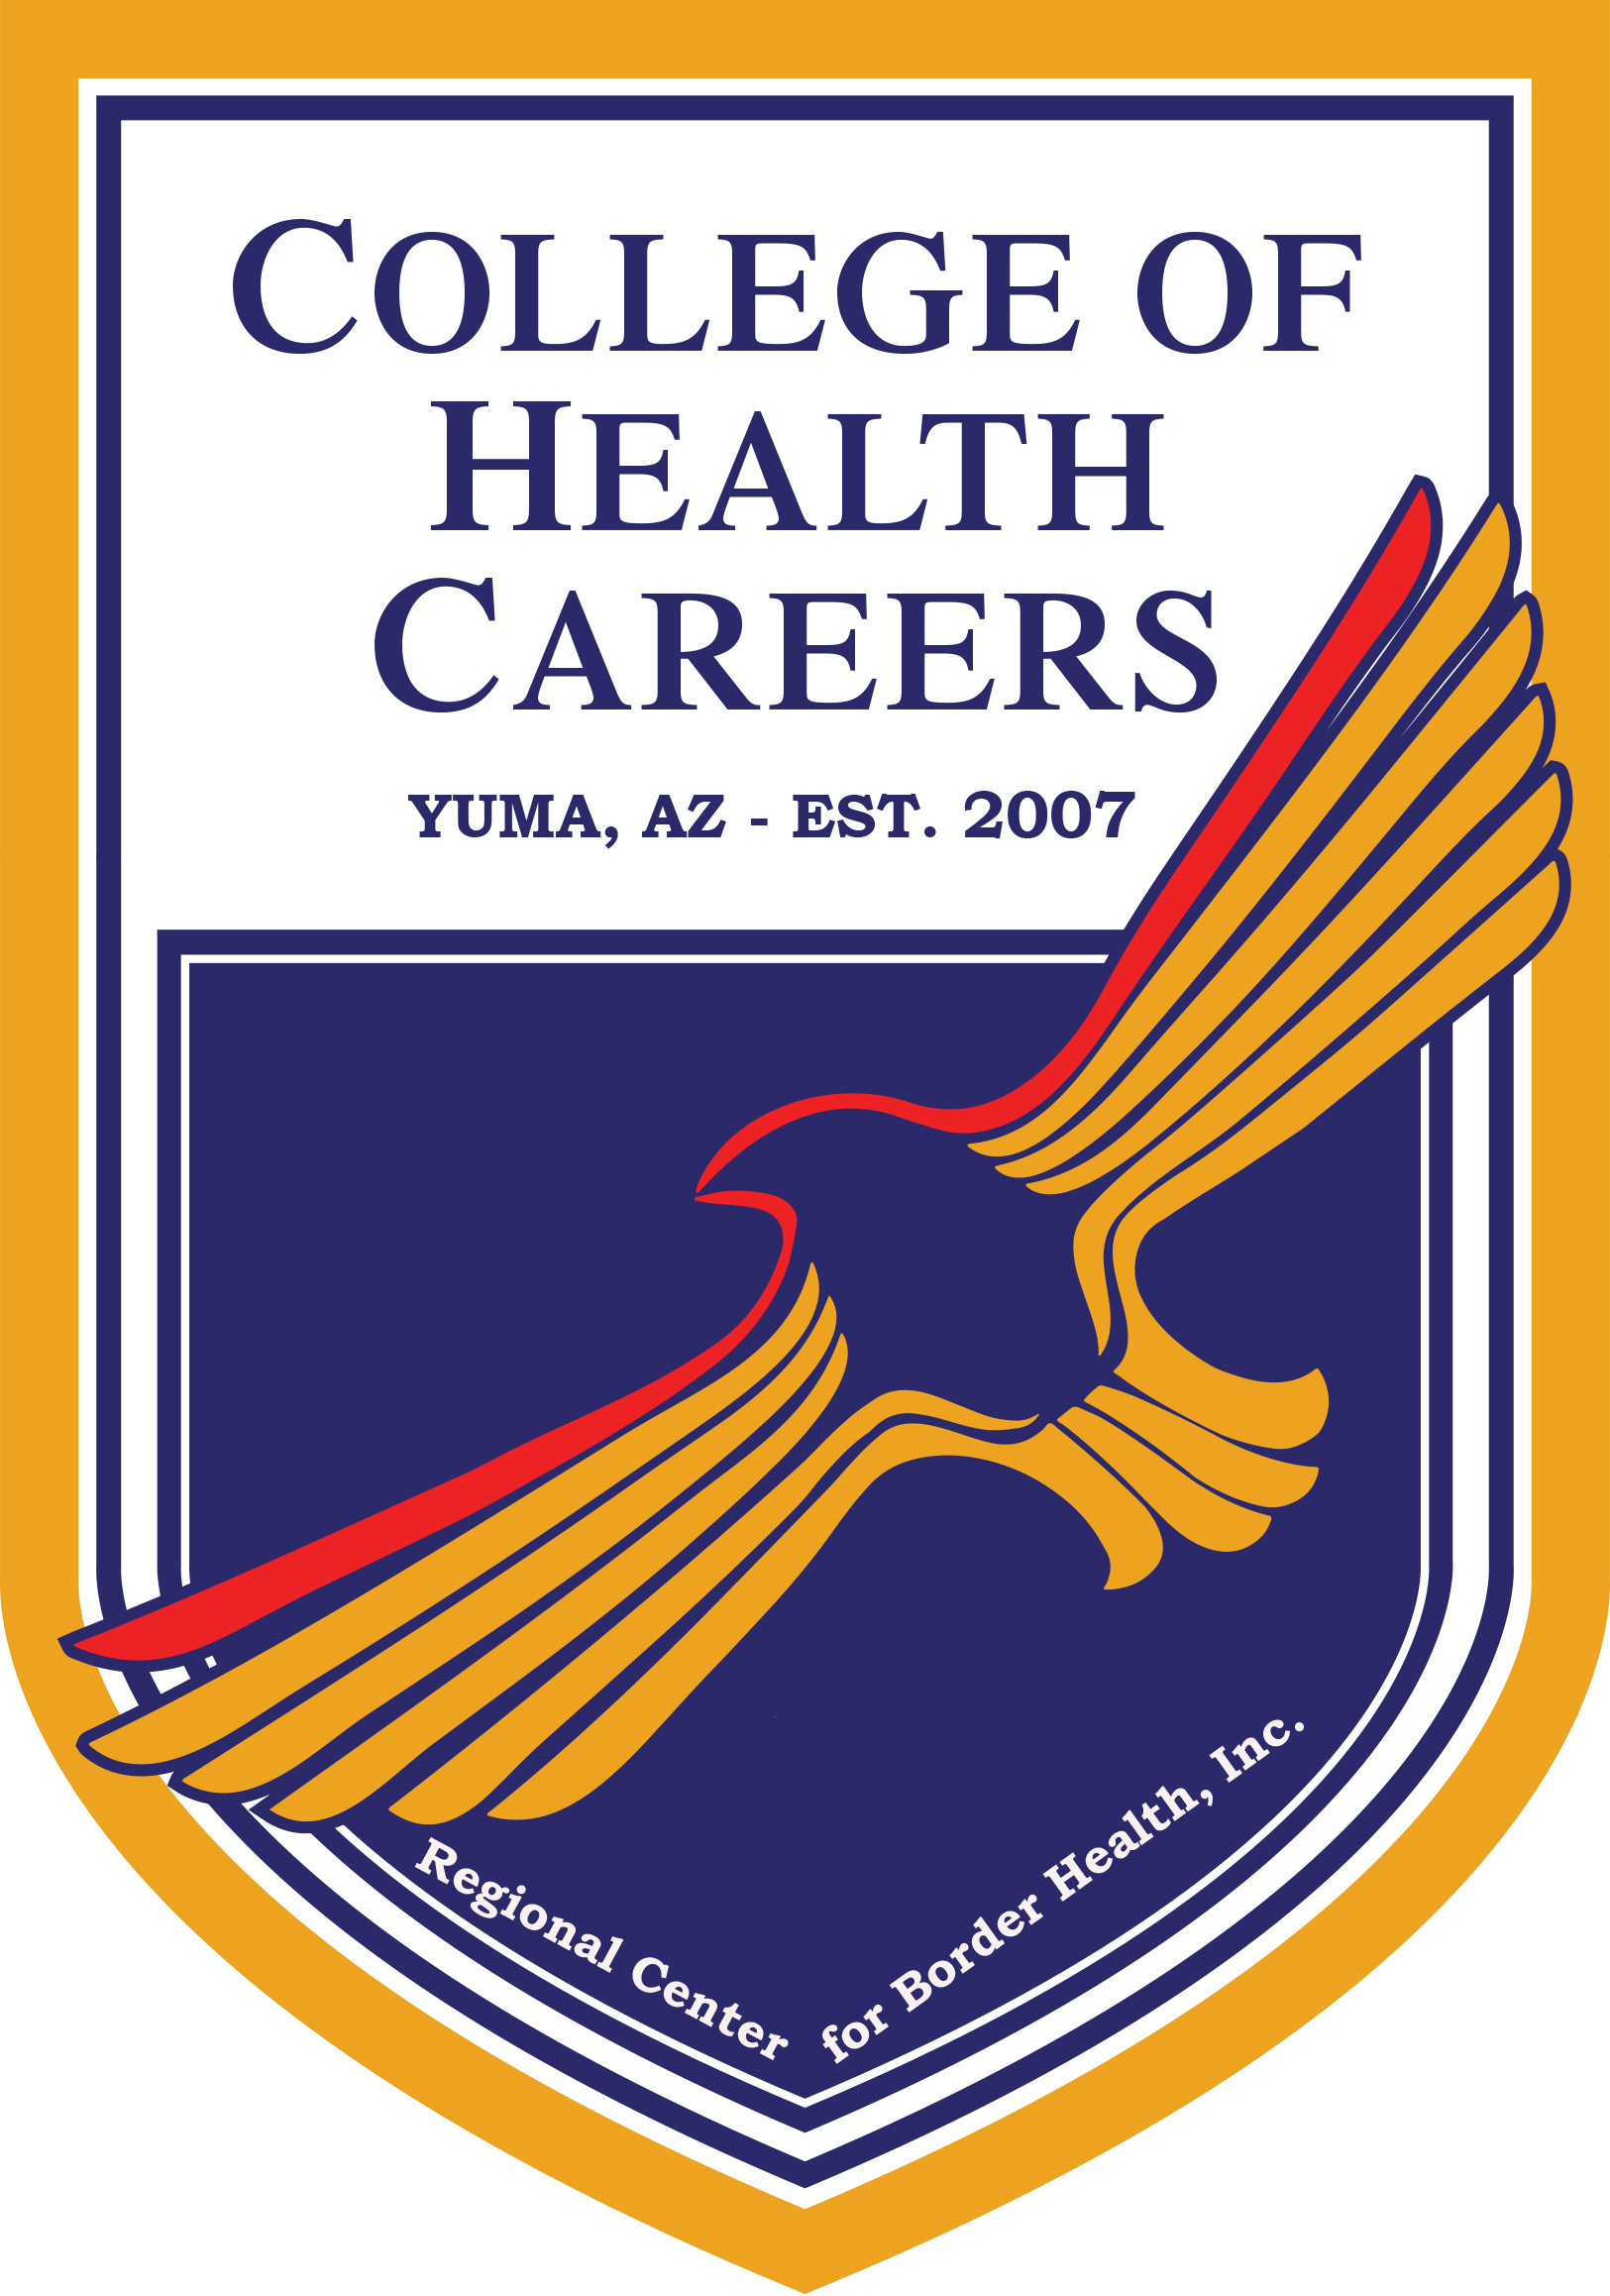 College of health careers regional center for border health inc college of health careers logo 1betcityfo Gallery